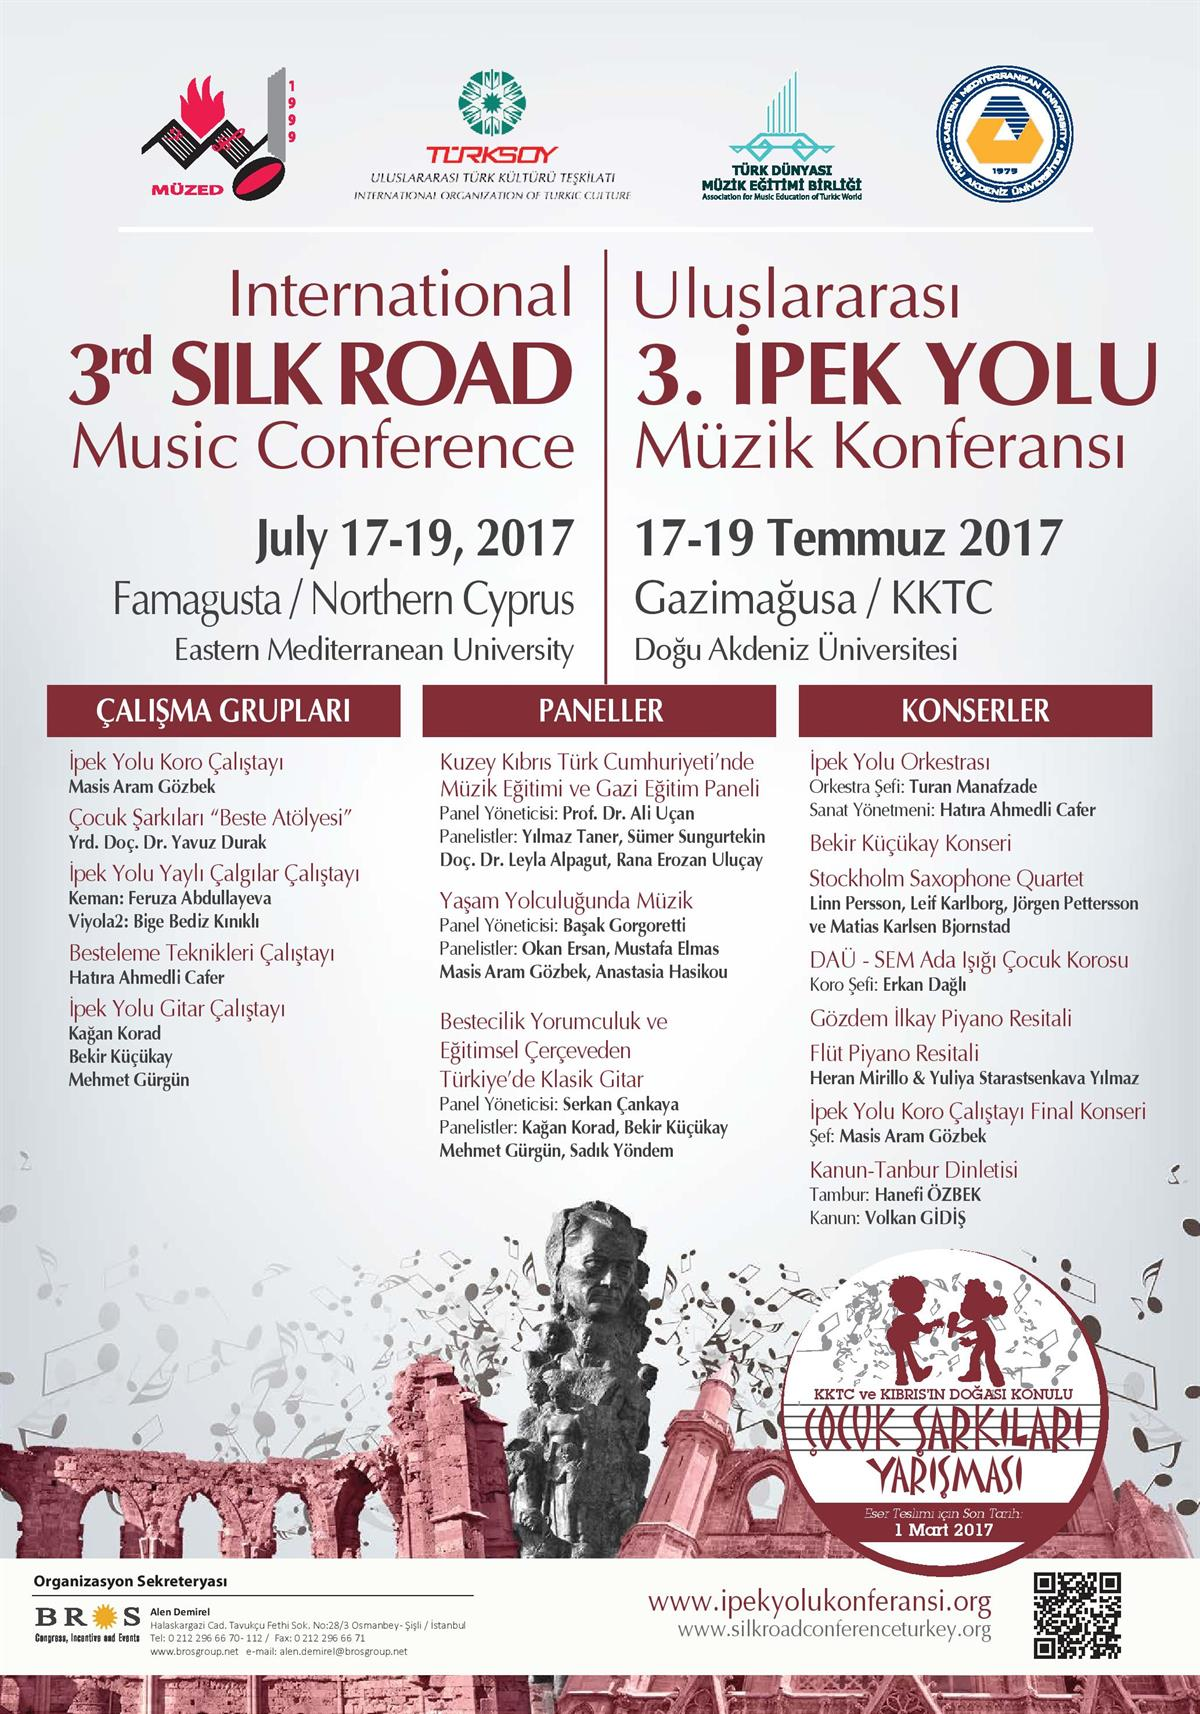 International 3rd SILK ROAD Music Conferance